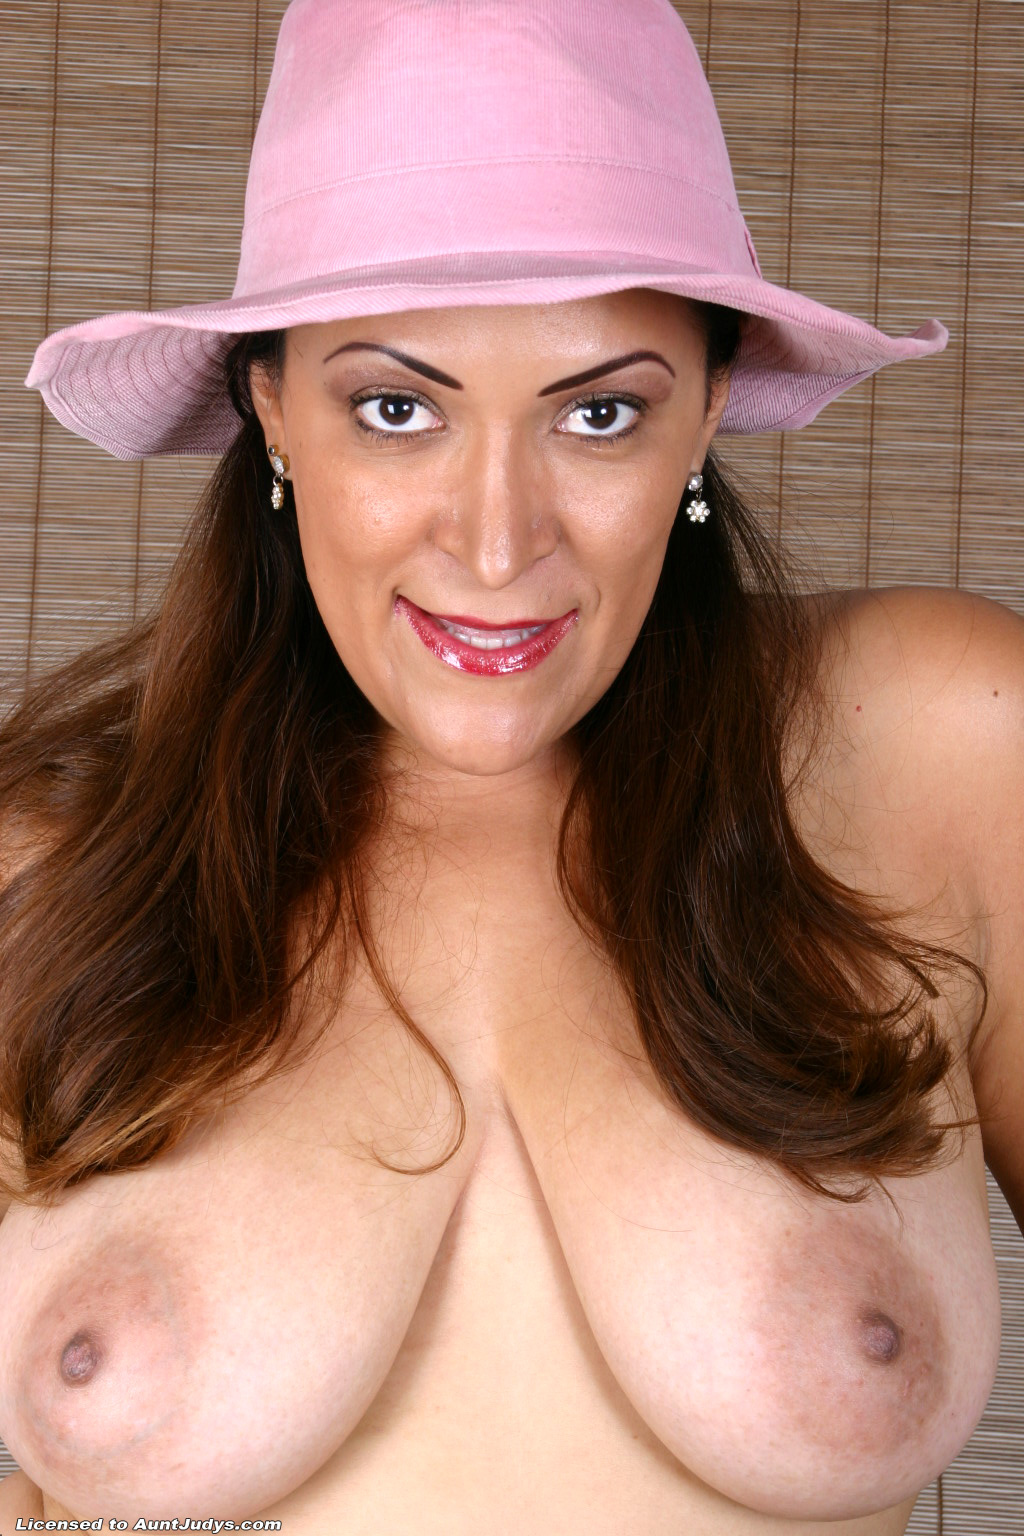 Aunt judys mature nudes join told